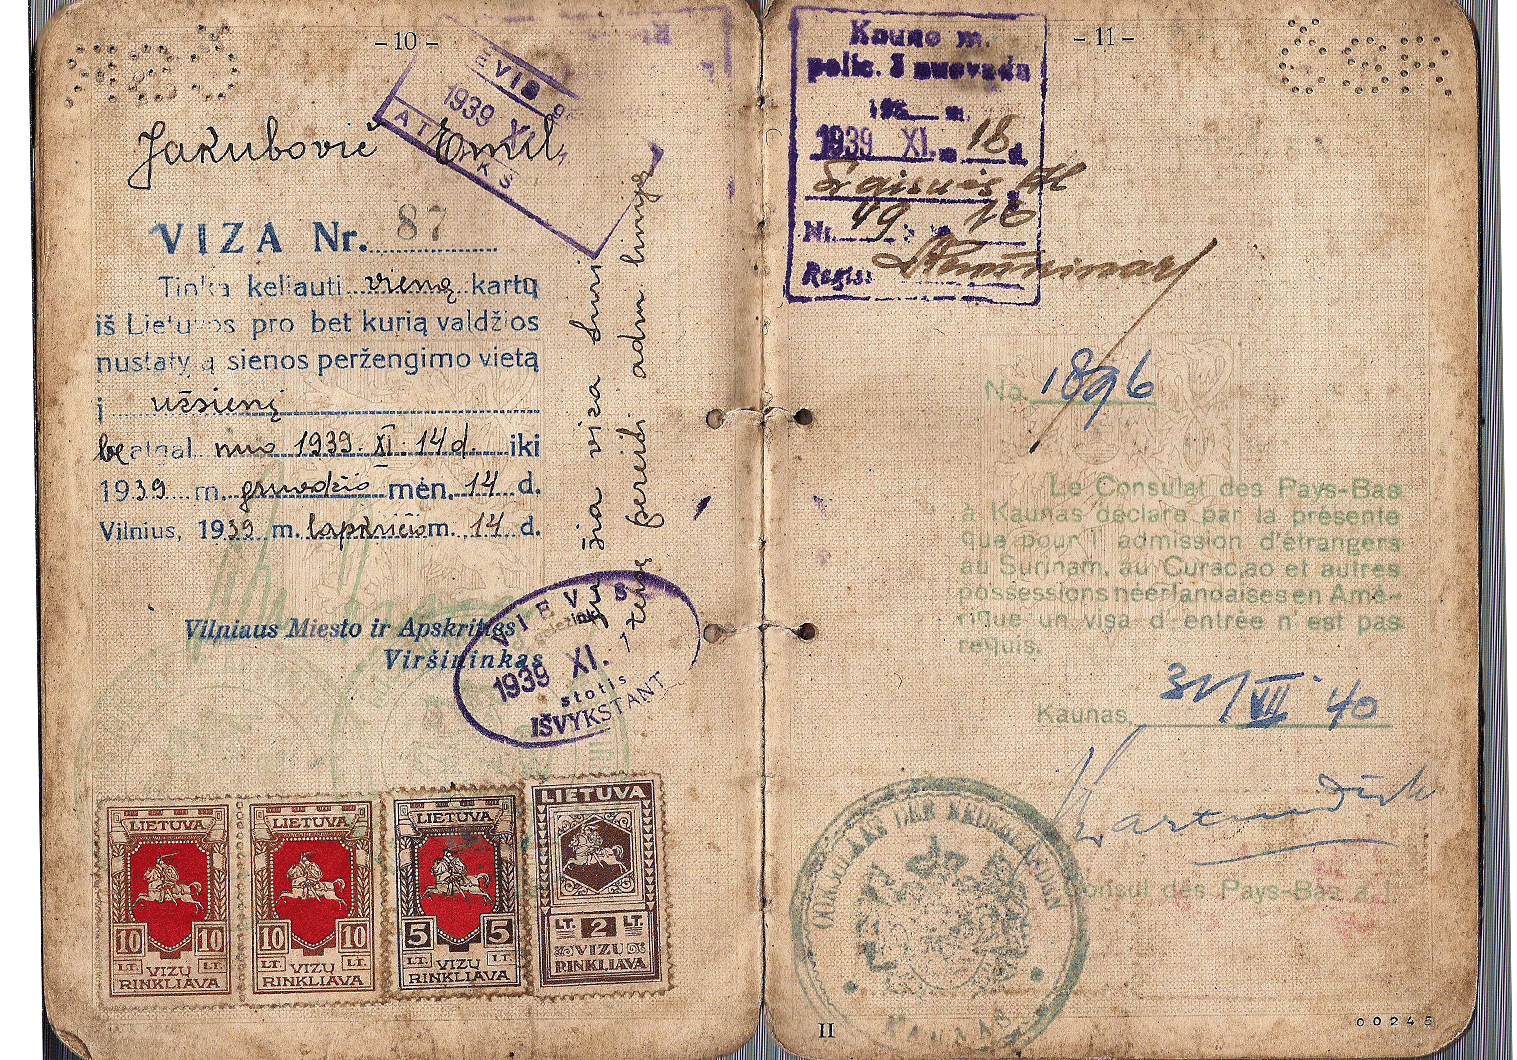 Important short-lived WWII related visa